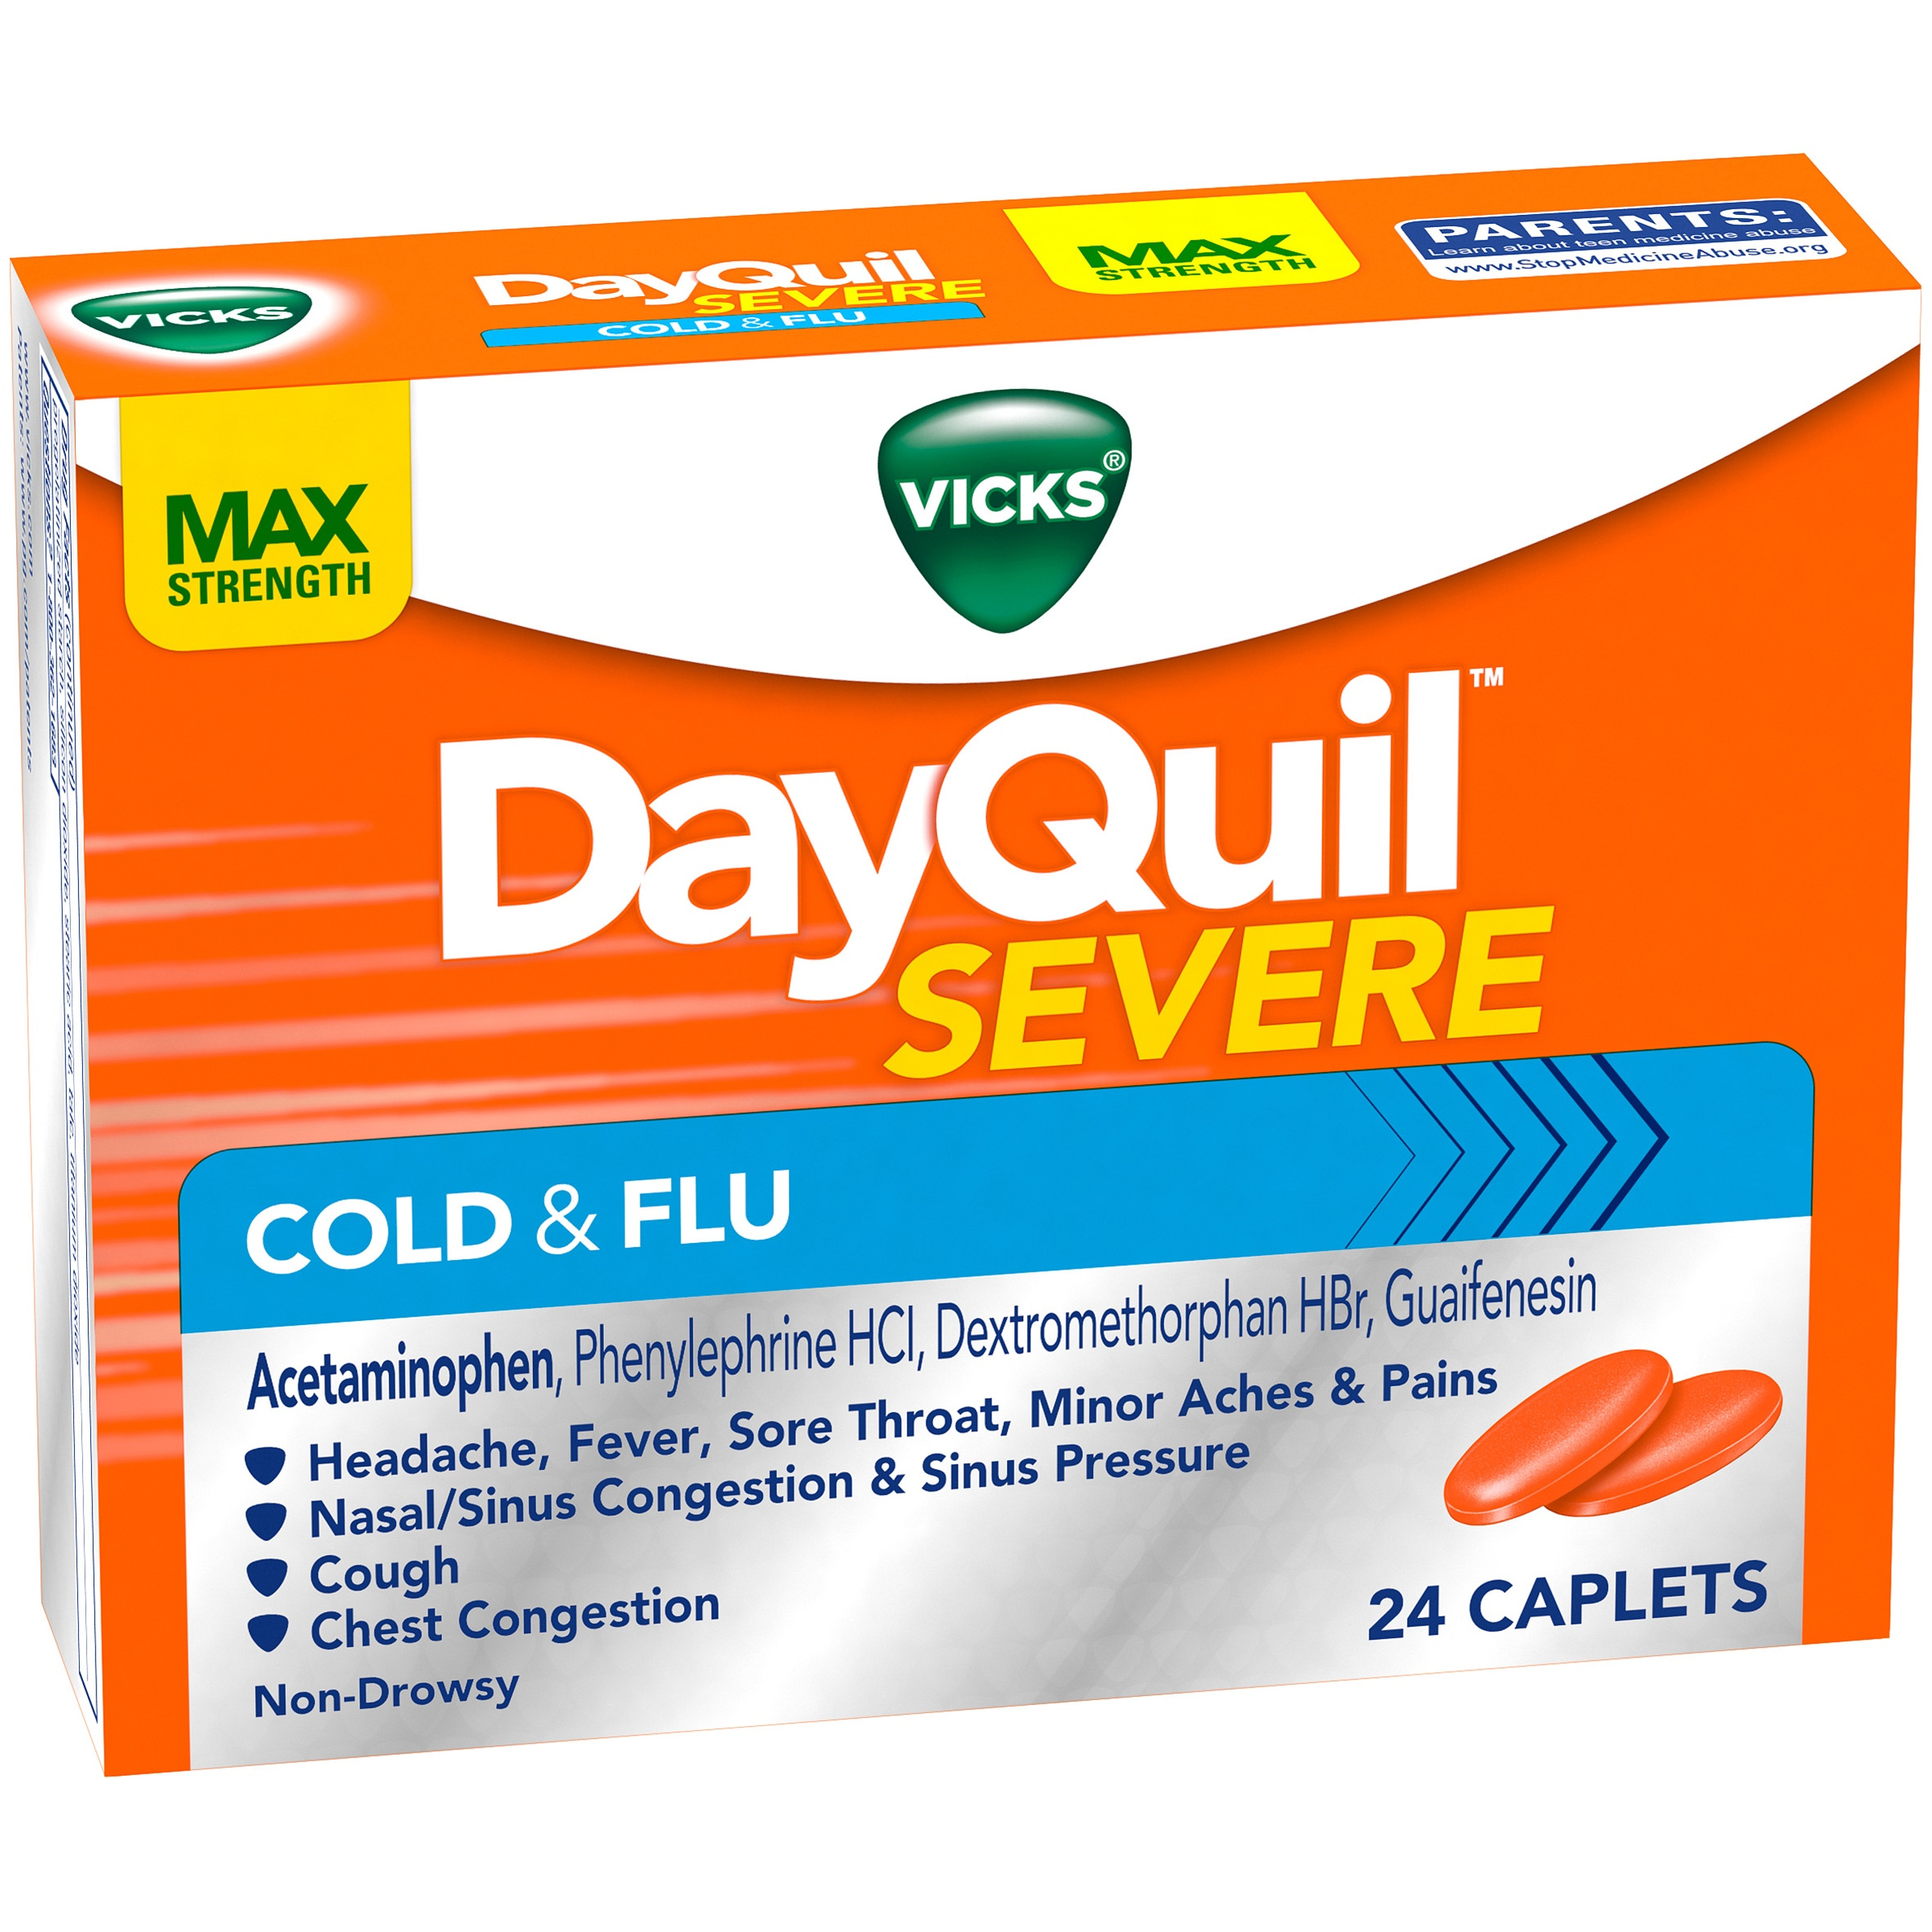 Vicks® DayQuil™ Severe Cold & Flu Caplets 24 ct Box